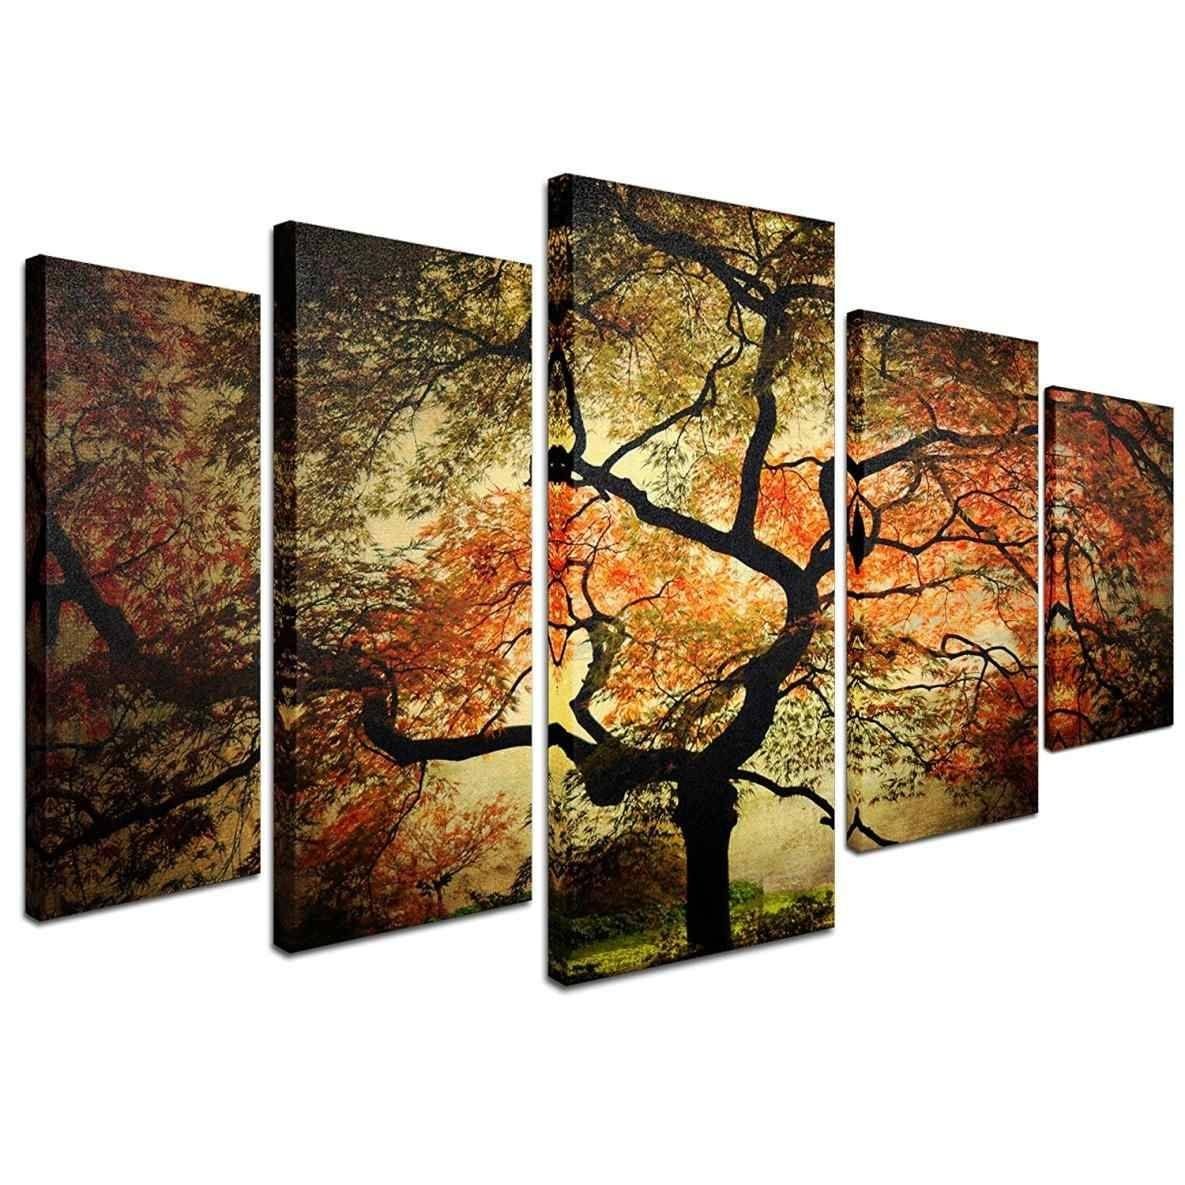 Multiple Piece Canvas Wall Art | Home Interior Decor Inside Best And Newest Multiple Canvas Wall Art (View 5 of 20)